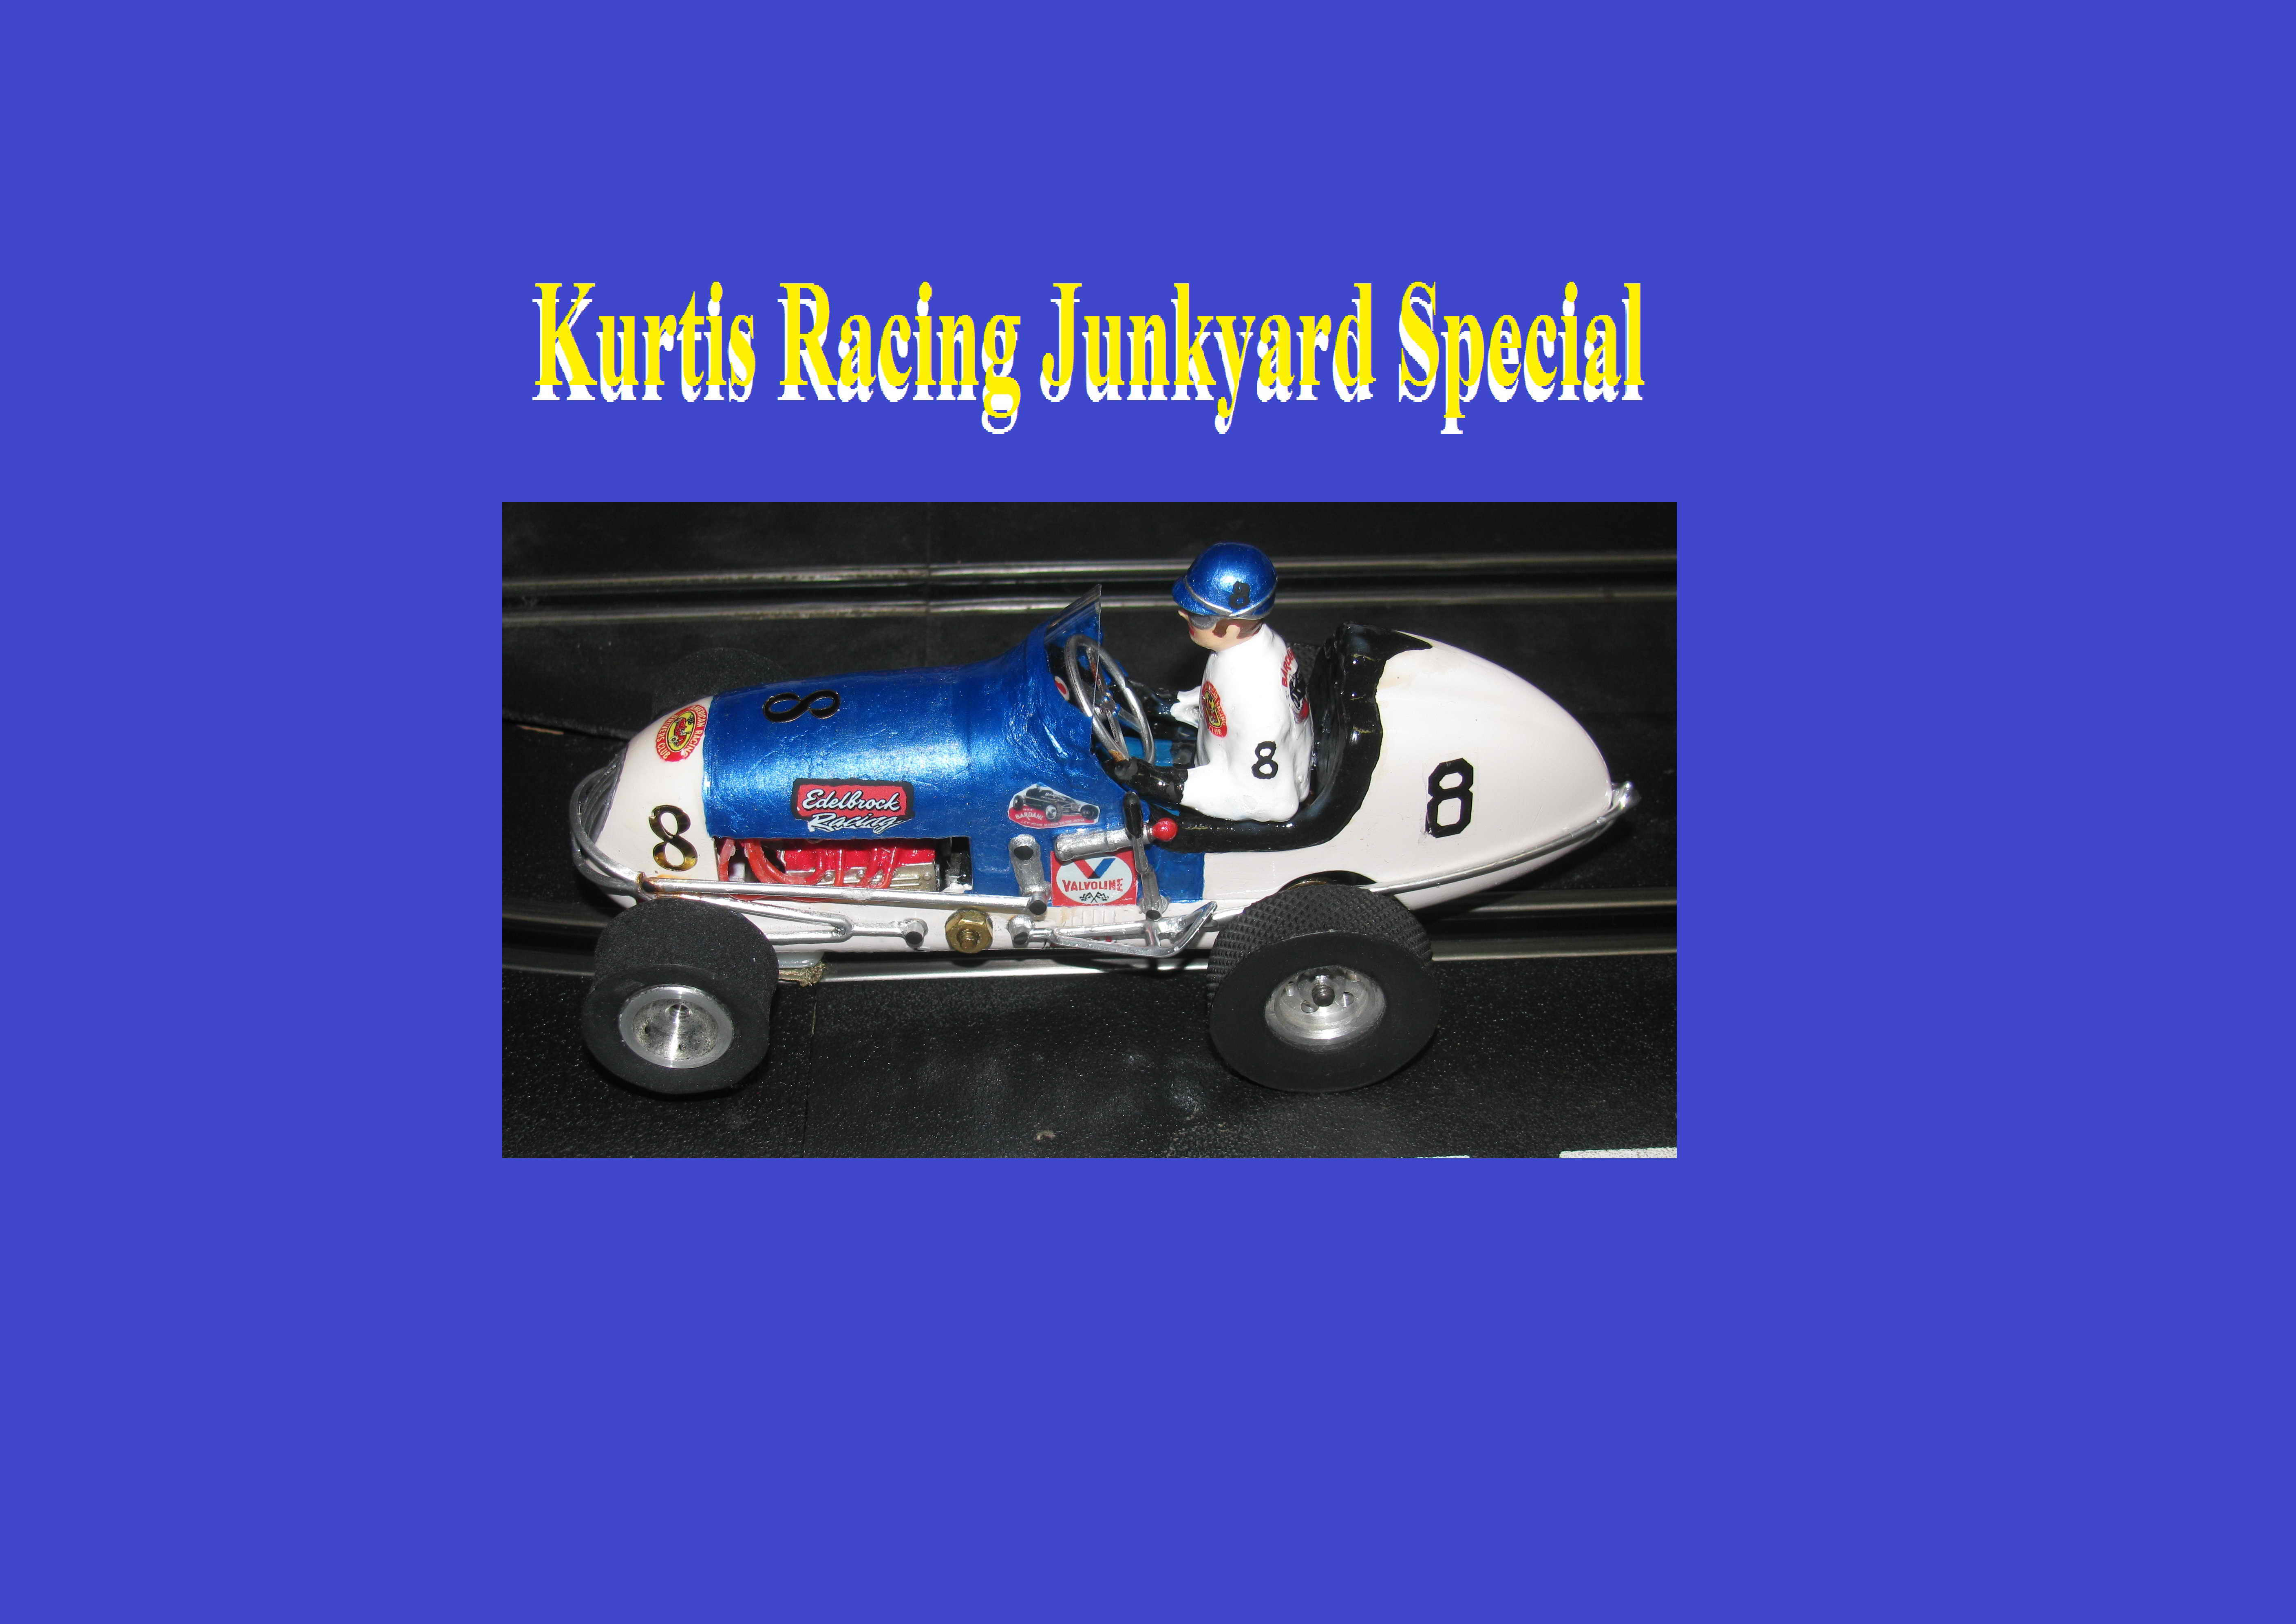 *SOLD* *SPECIAL FOR CHARLES E.* Monogram Midget Racing Junkyard Kurtis Racing Special #8 two tone body with an interesting livery the scrappy junkyard racer is a good bet